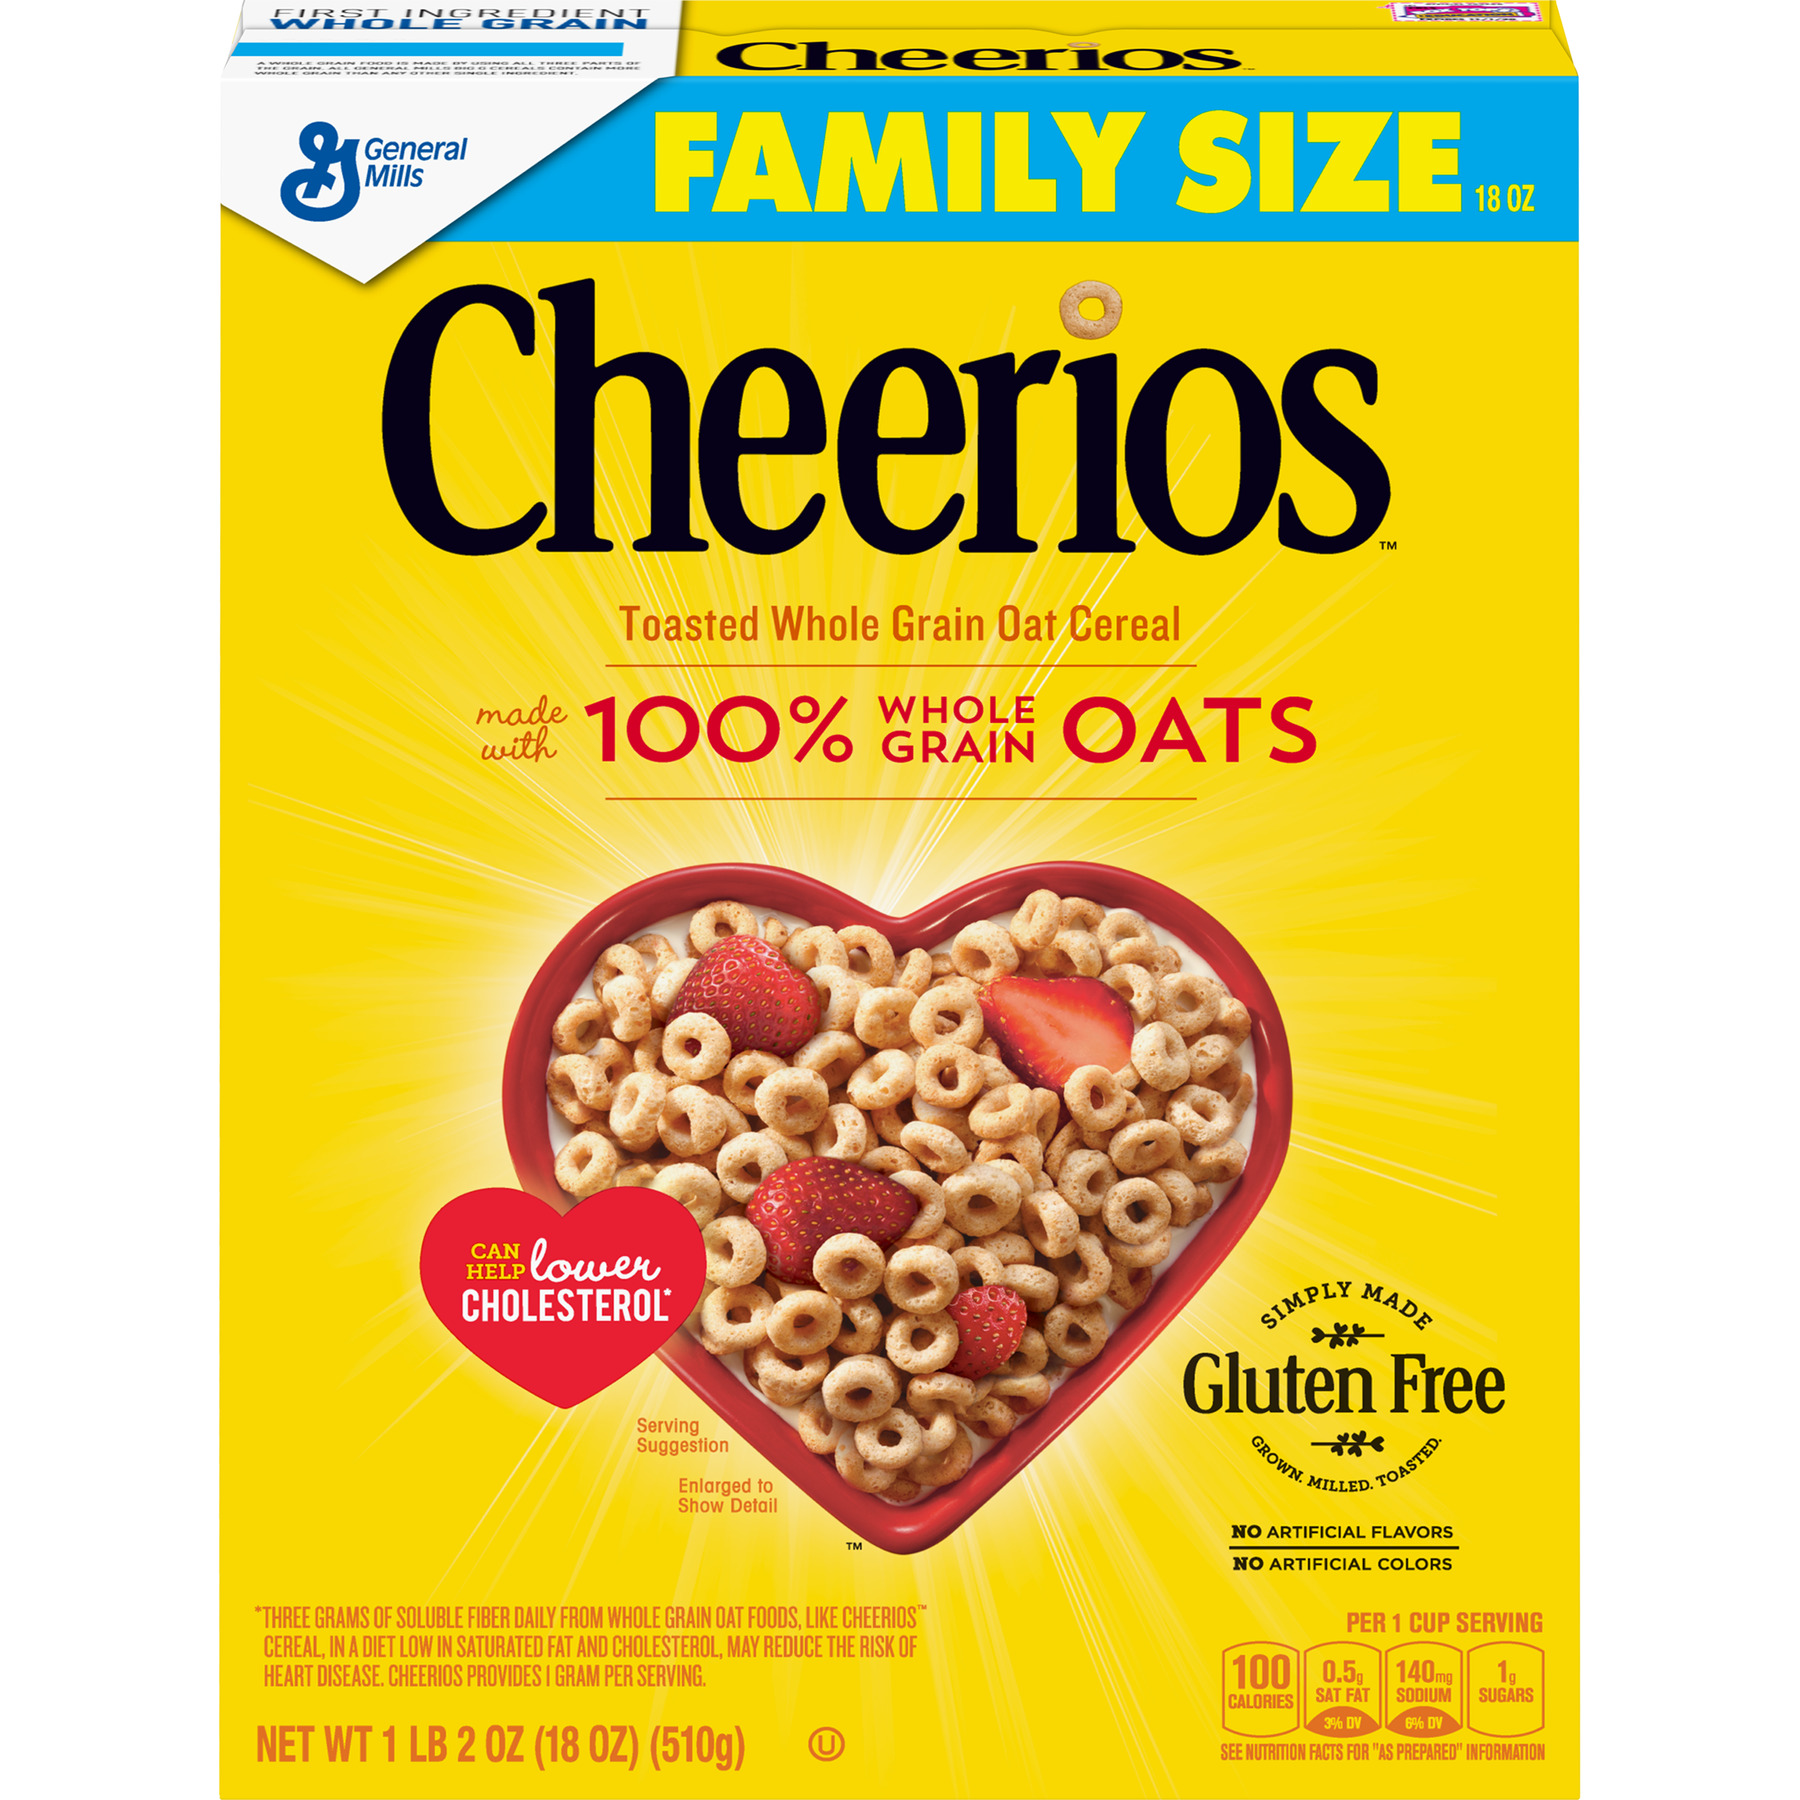 Cheerios, Gluten Free, Breakfast Cereal, Large Size, 18 oz Box